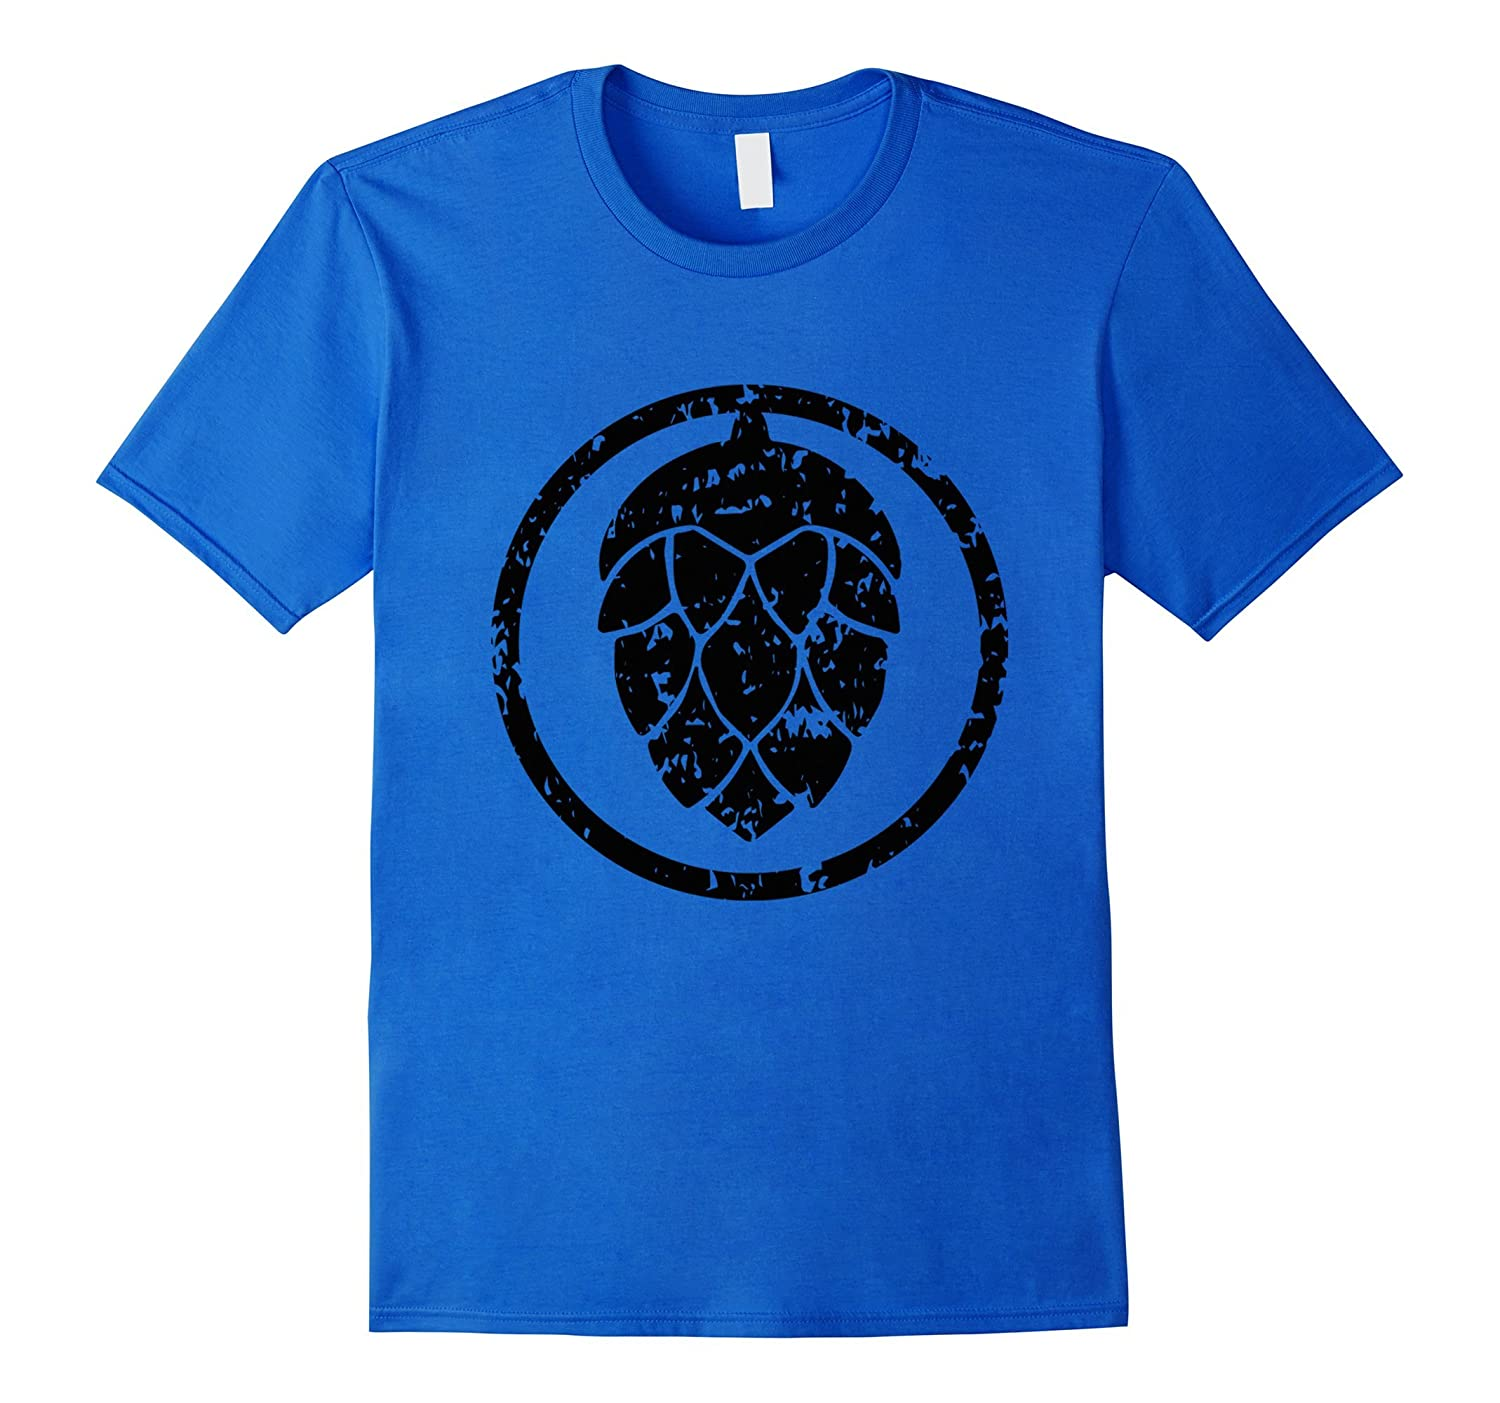 Ipa t shirt craft beer hops logo shirt rt rateeshirt for Craft brewery t shirts